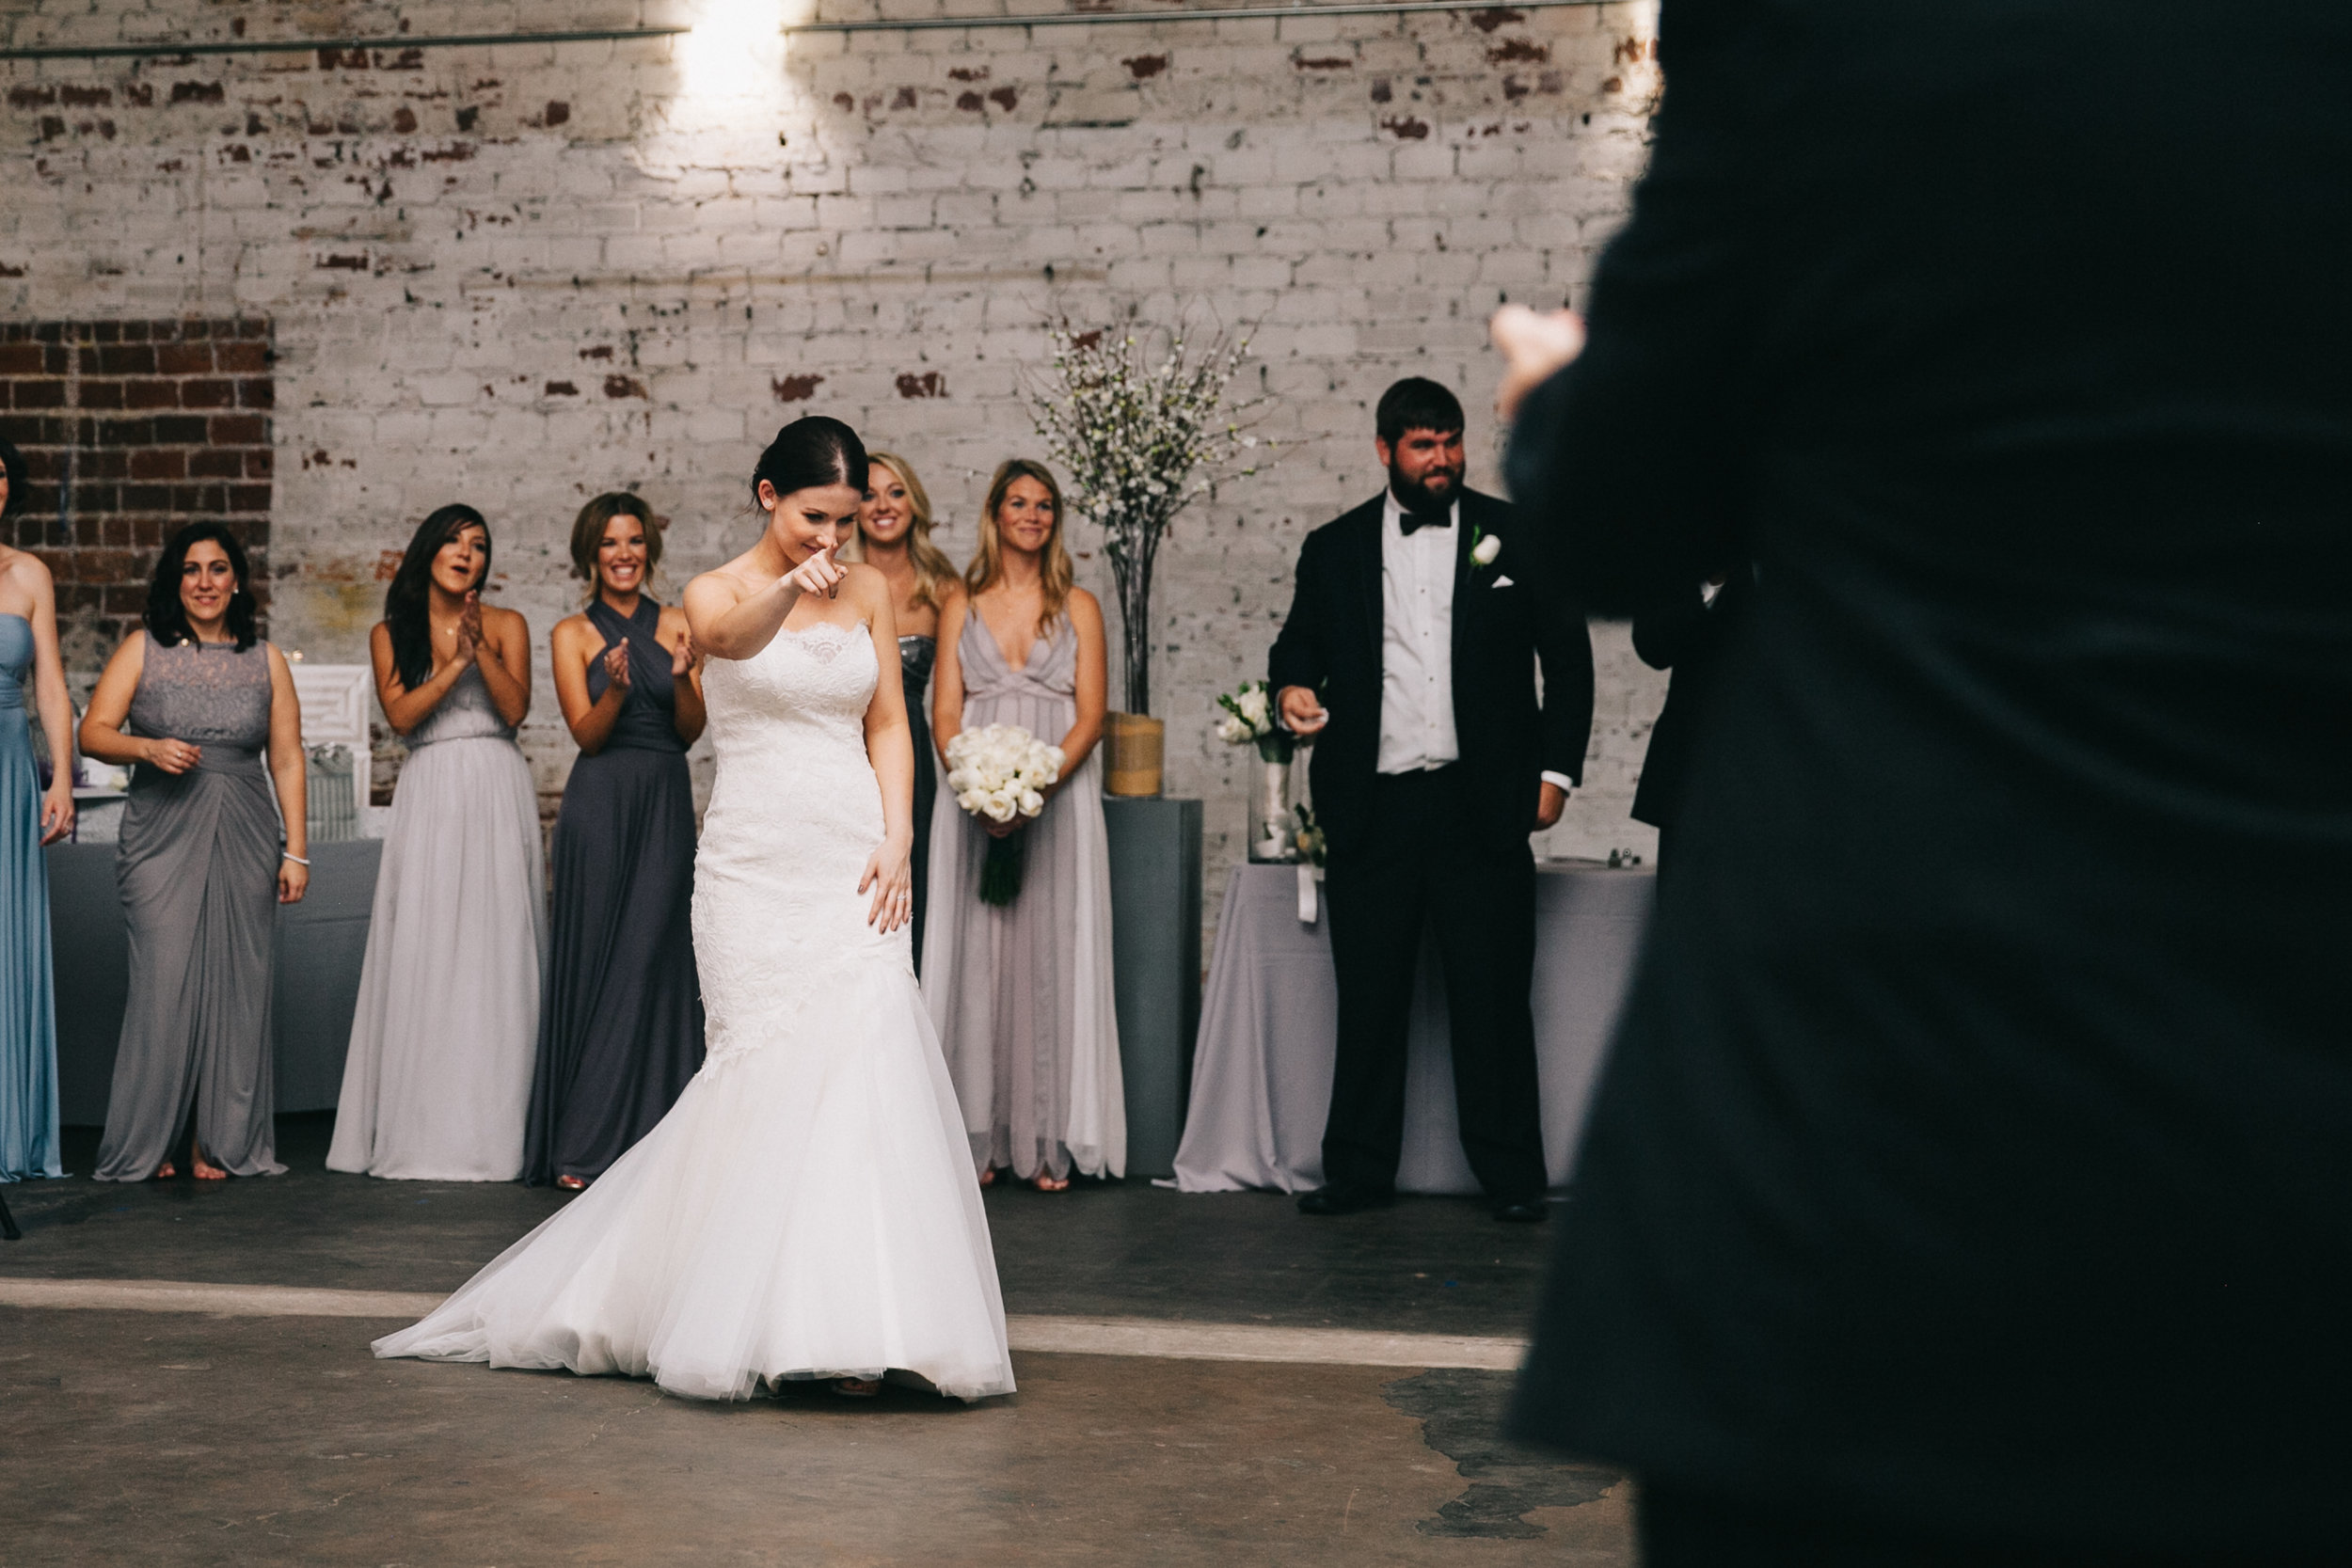 Tampa Industrial wedding at the Rialto Theater_175.jpg